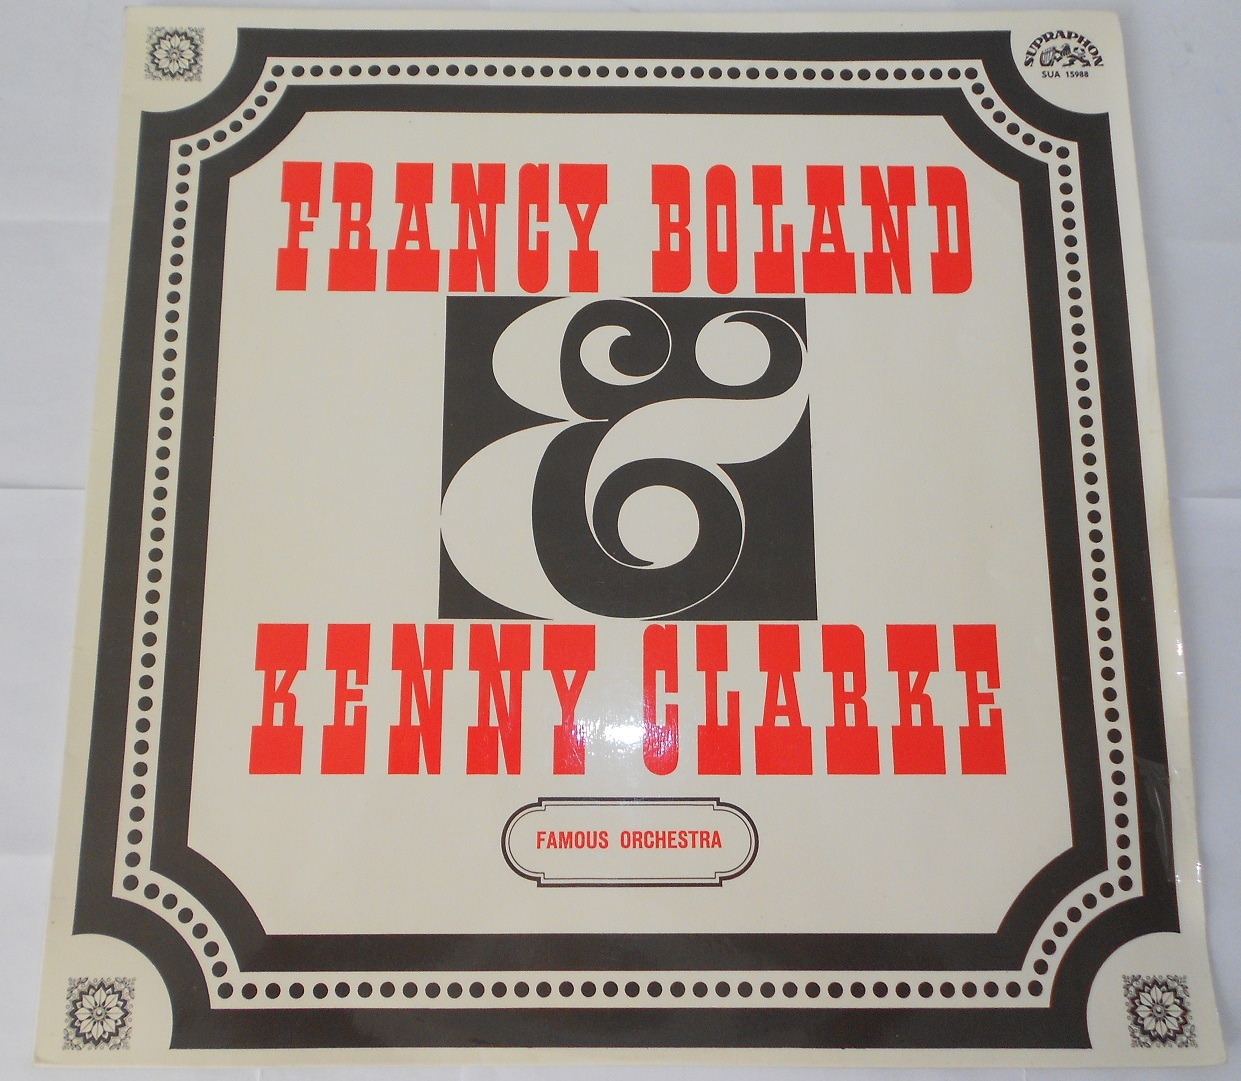 Francy Boland & Kenny Clarke Big Band - Francy Boland & Kenny Clarke Famous Orchestra (LP)